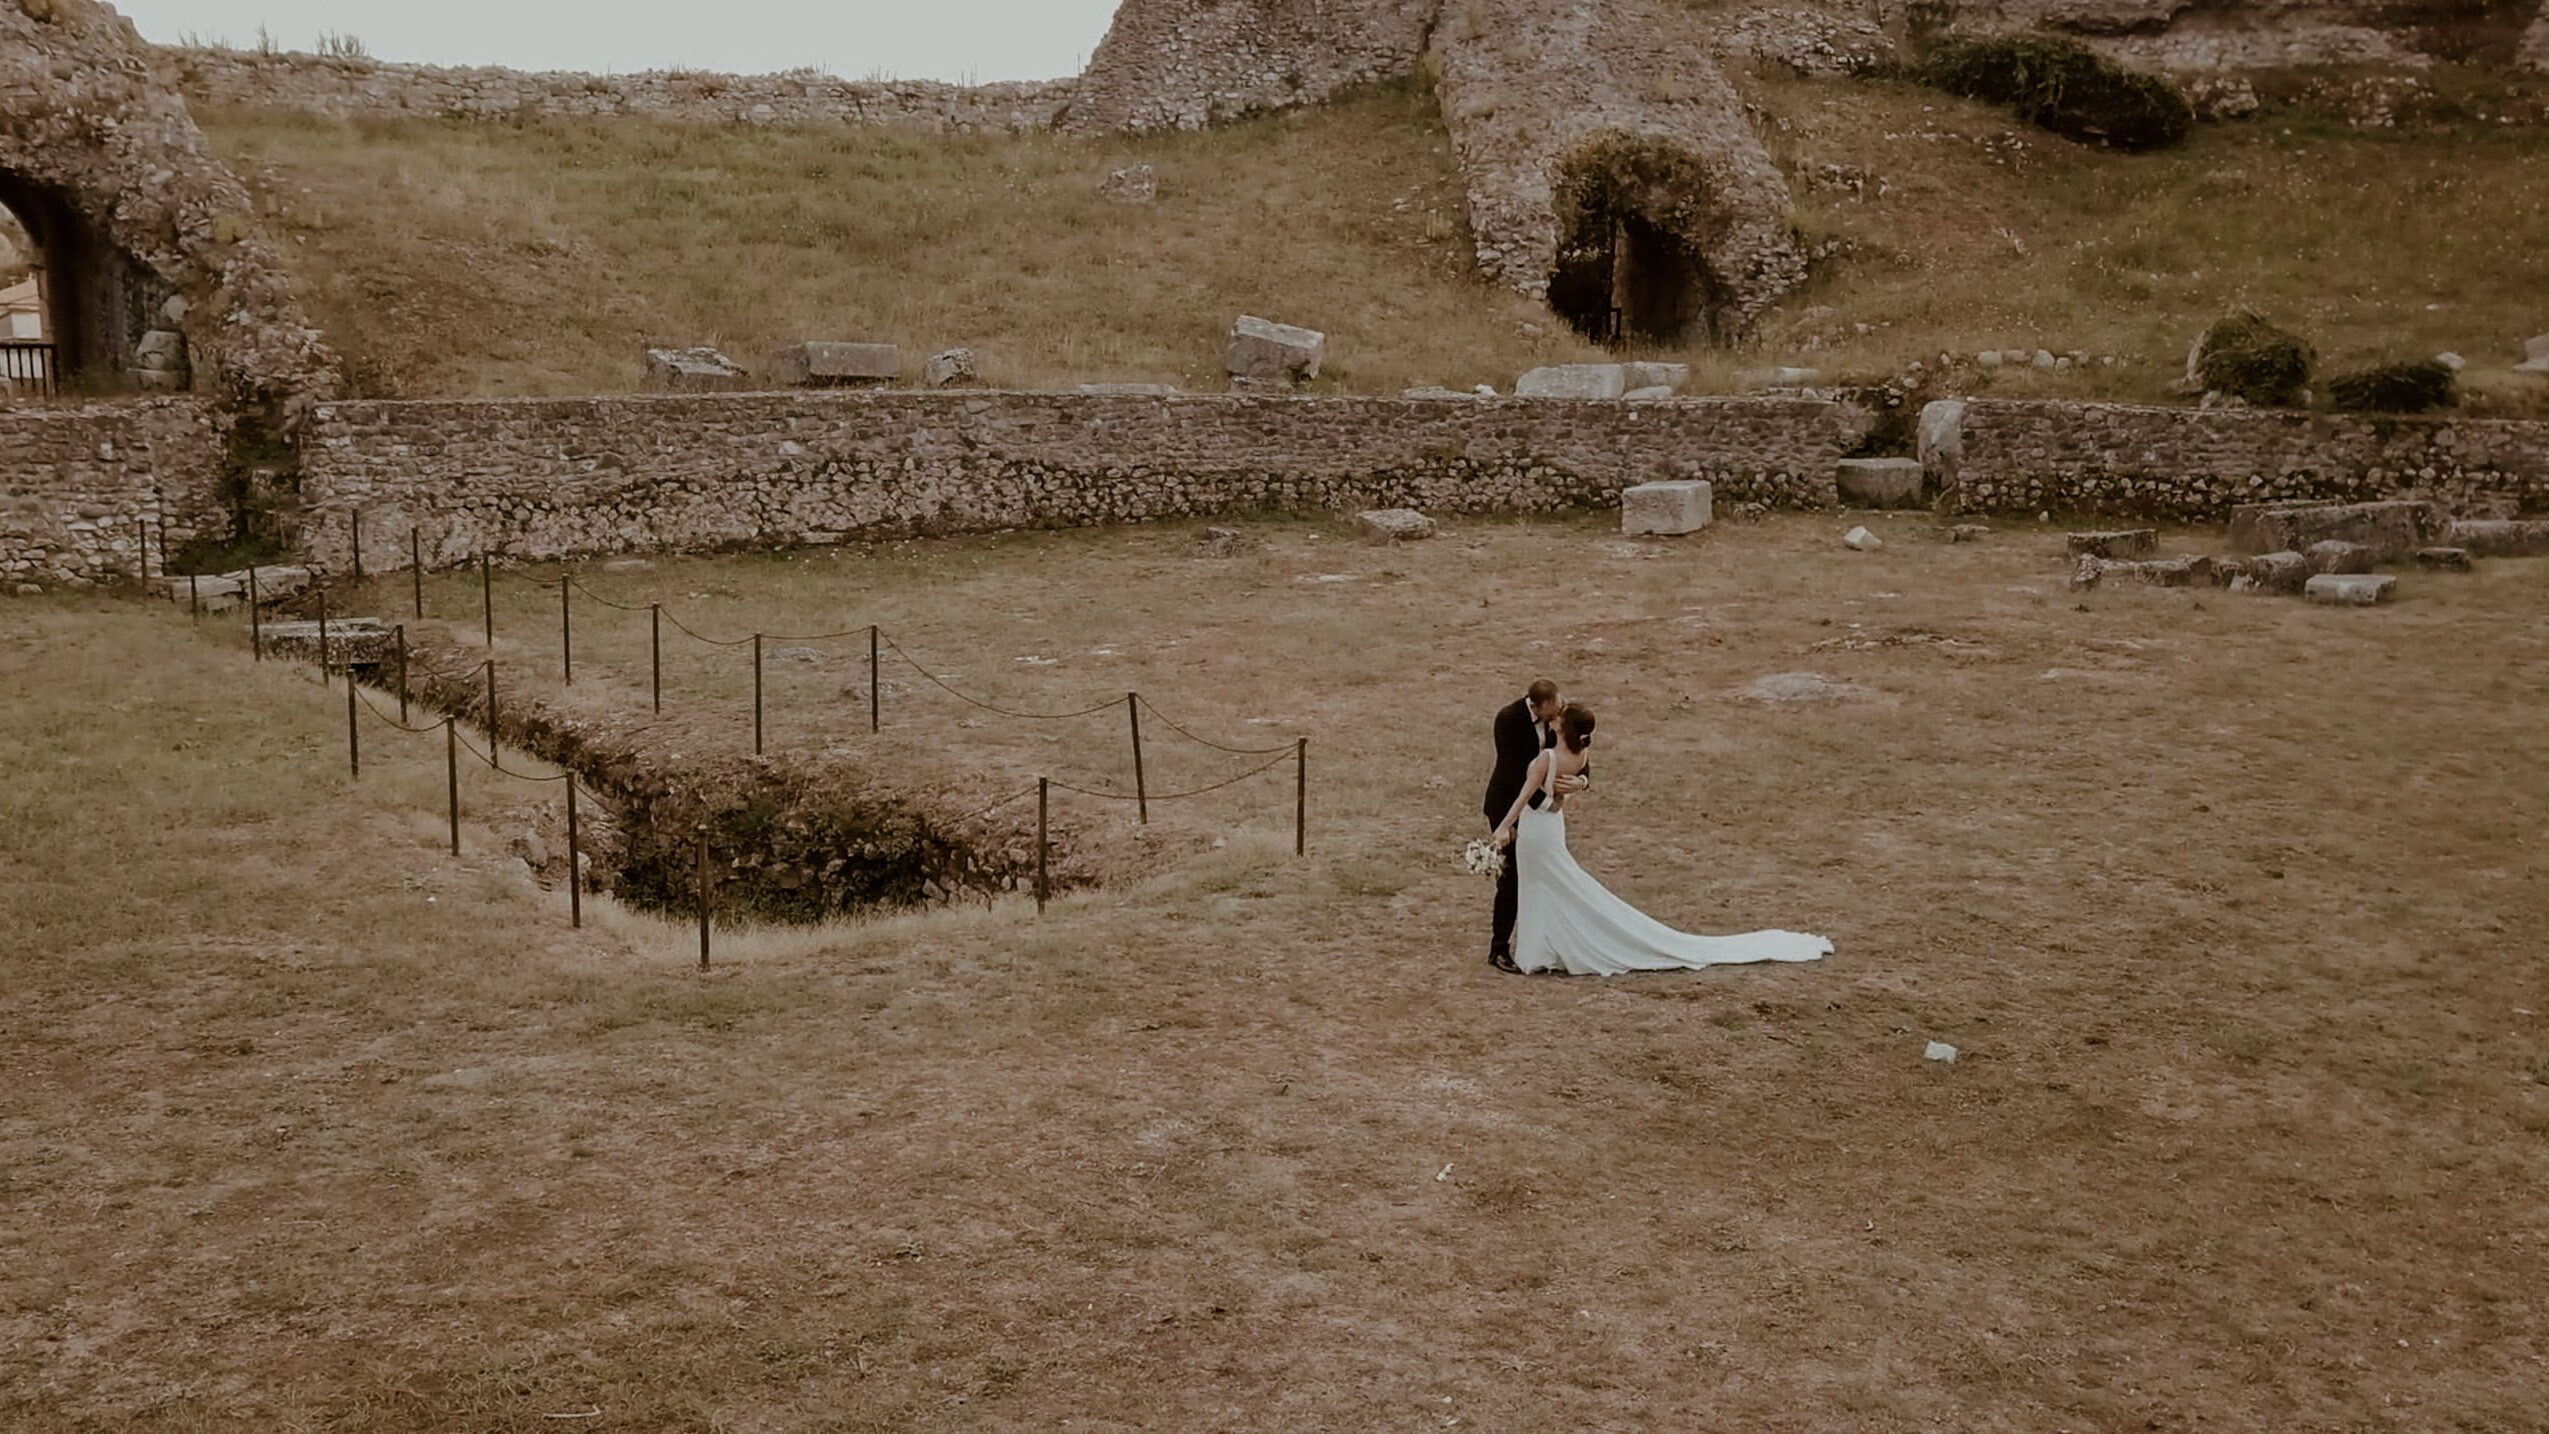 five unusual locations for a wedding in italy uai